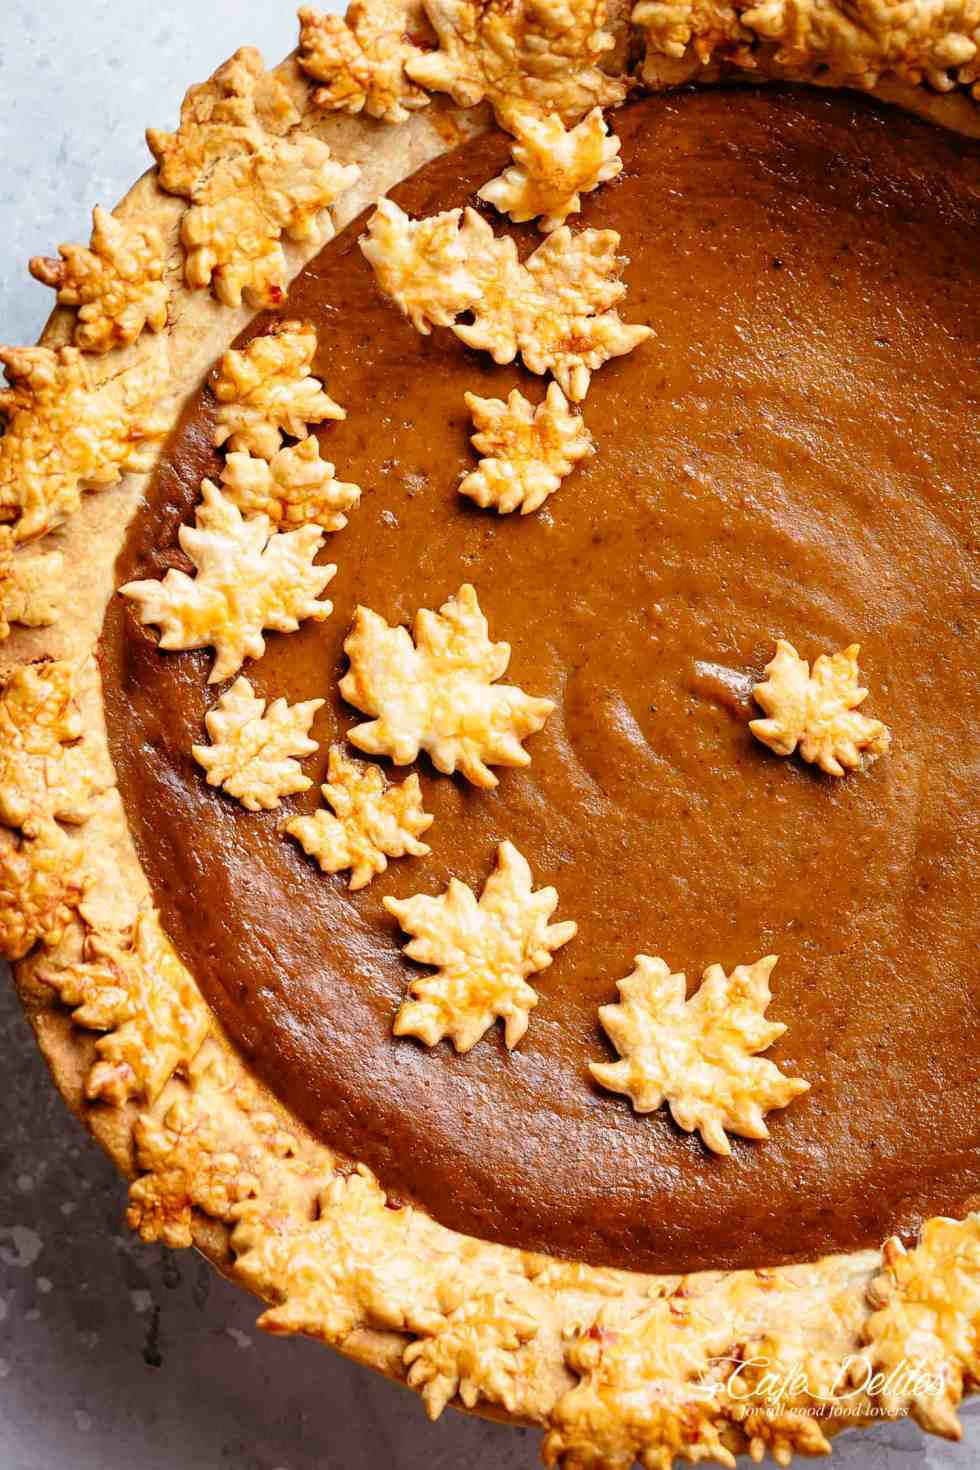 Homemade Pumpkin Pie Recipe tastes incredible filled with fall flavours for Thanksgiving! Canned or fresh pumpkin puree with cream (or evaporated milk), brown sugar(s), white sugar, eggs and delicious fall spices.